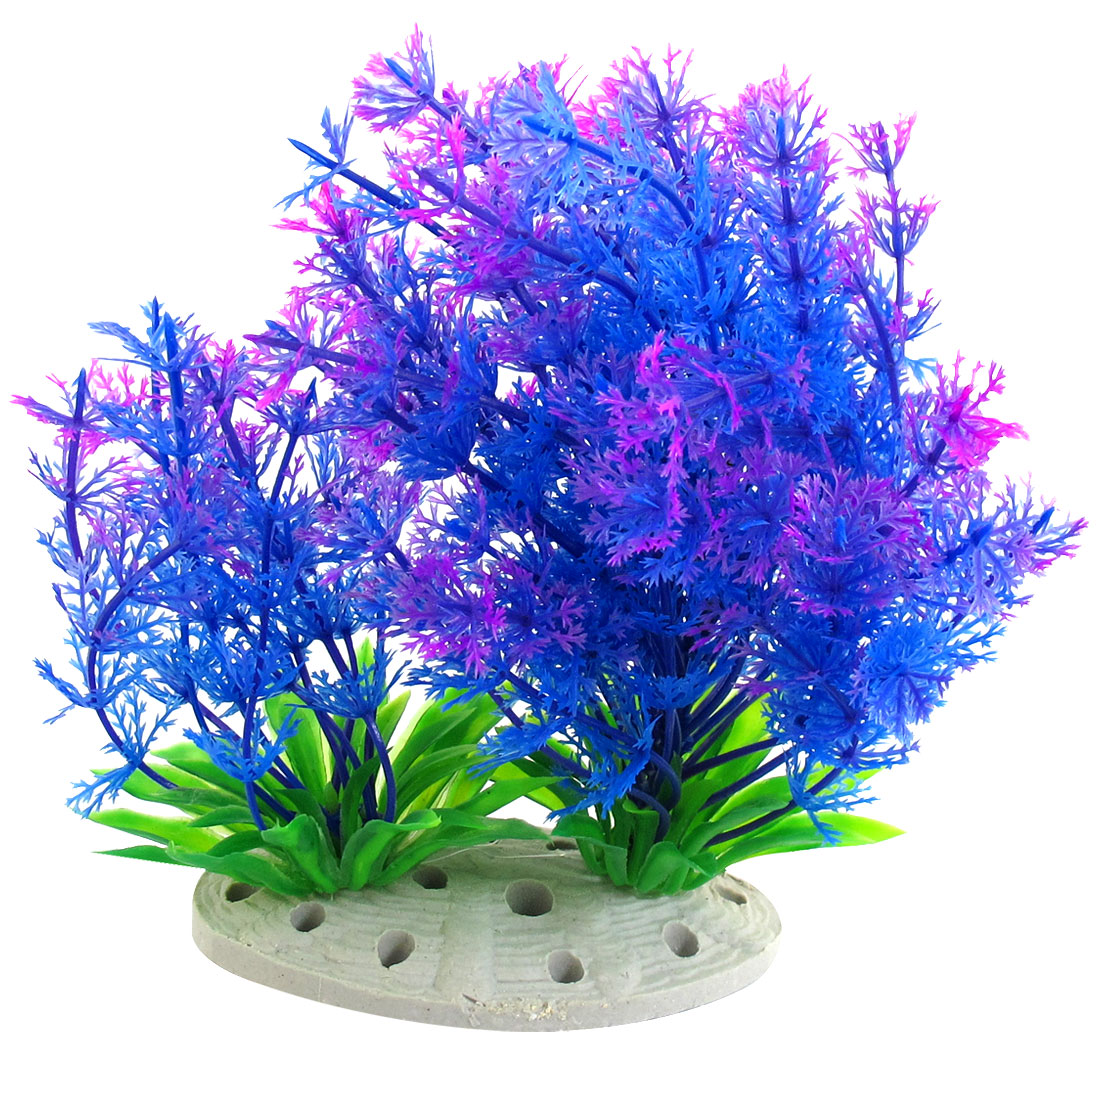 Underwater Multicolor Plastic Plants Fish Tank Aquarium Ornament 6.5""